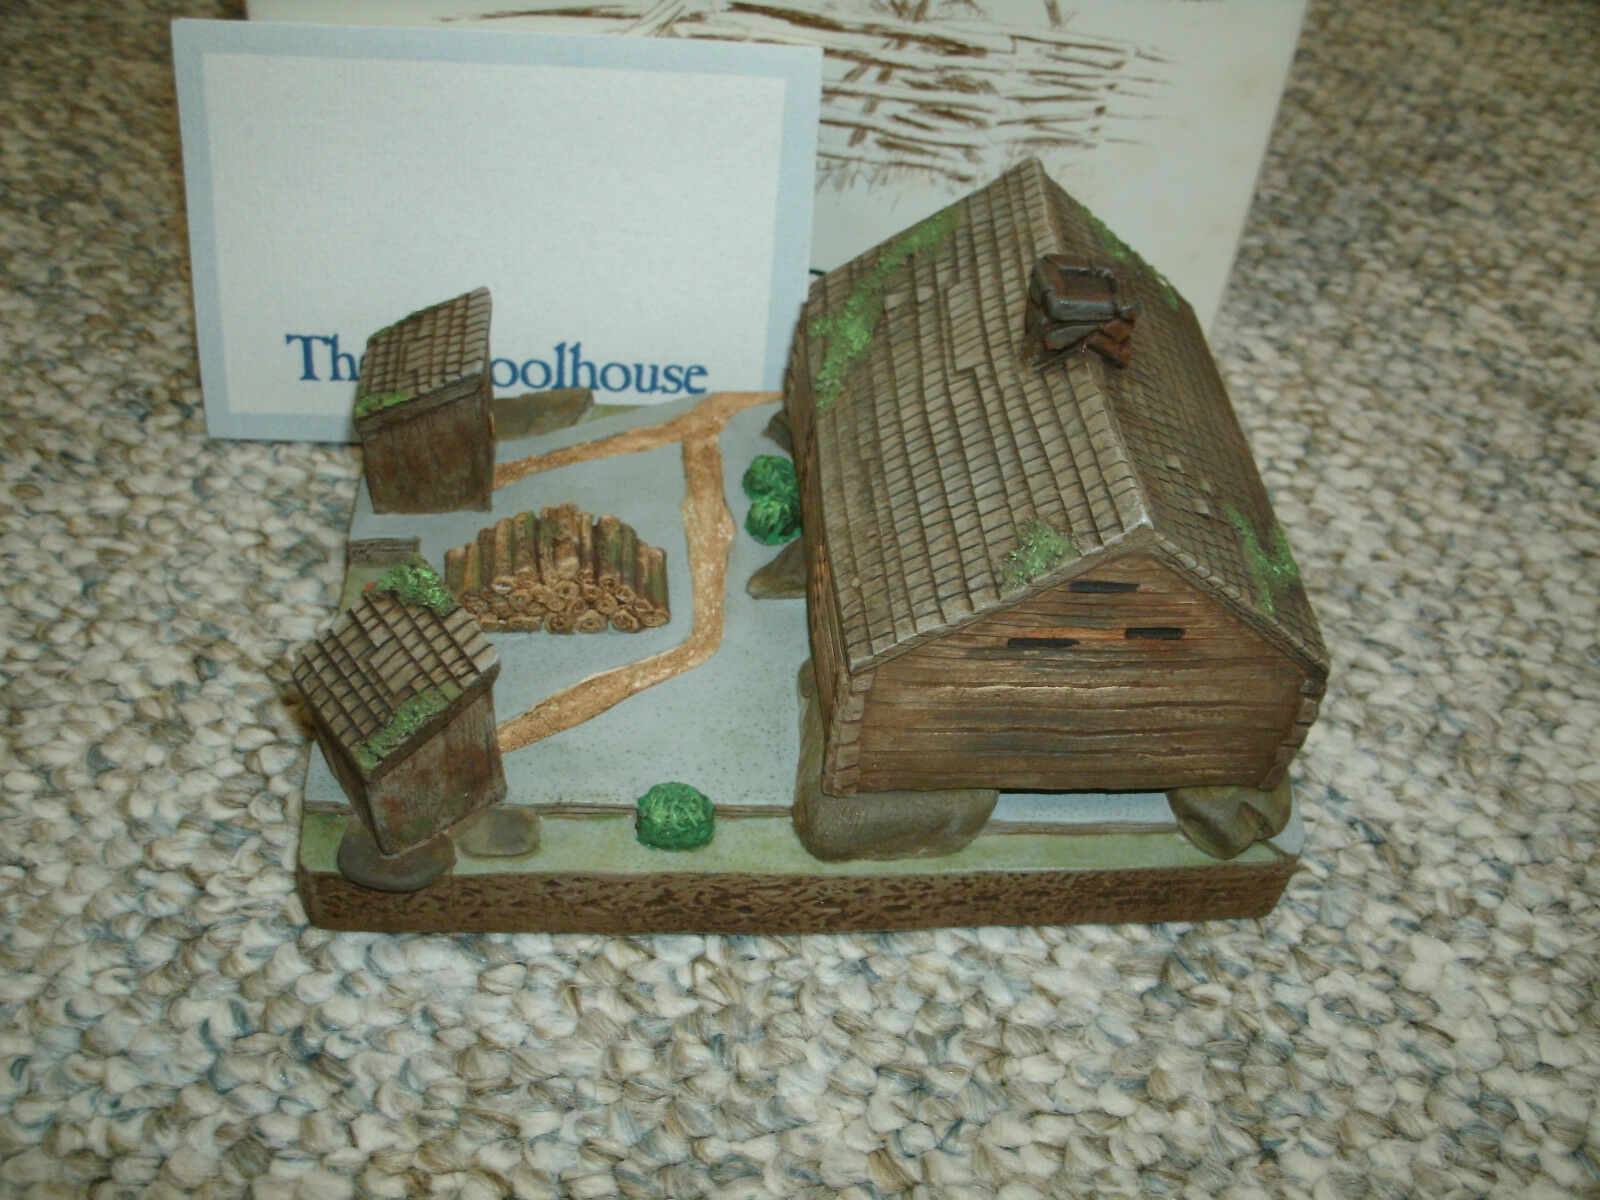 Cades Cove Series - The School House - National Heritage - With Box - Mint